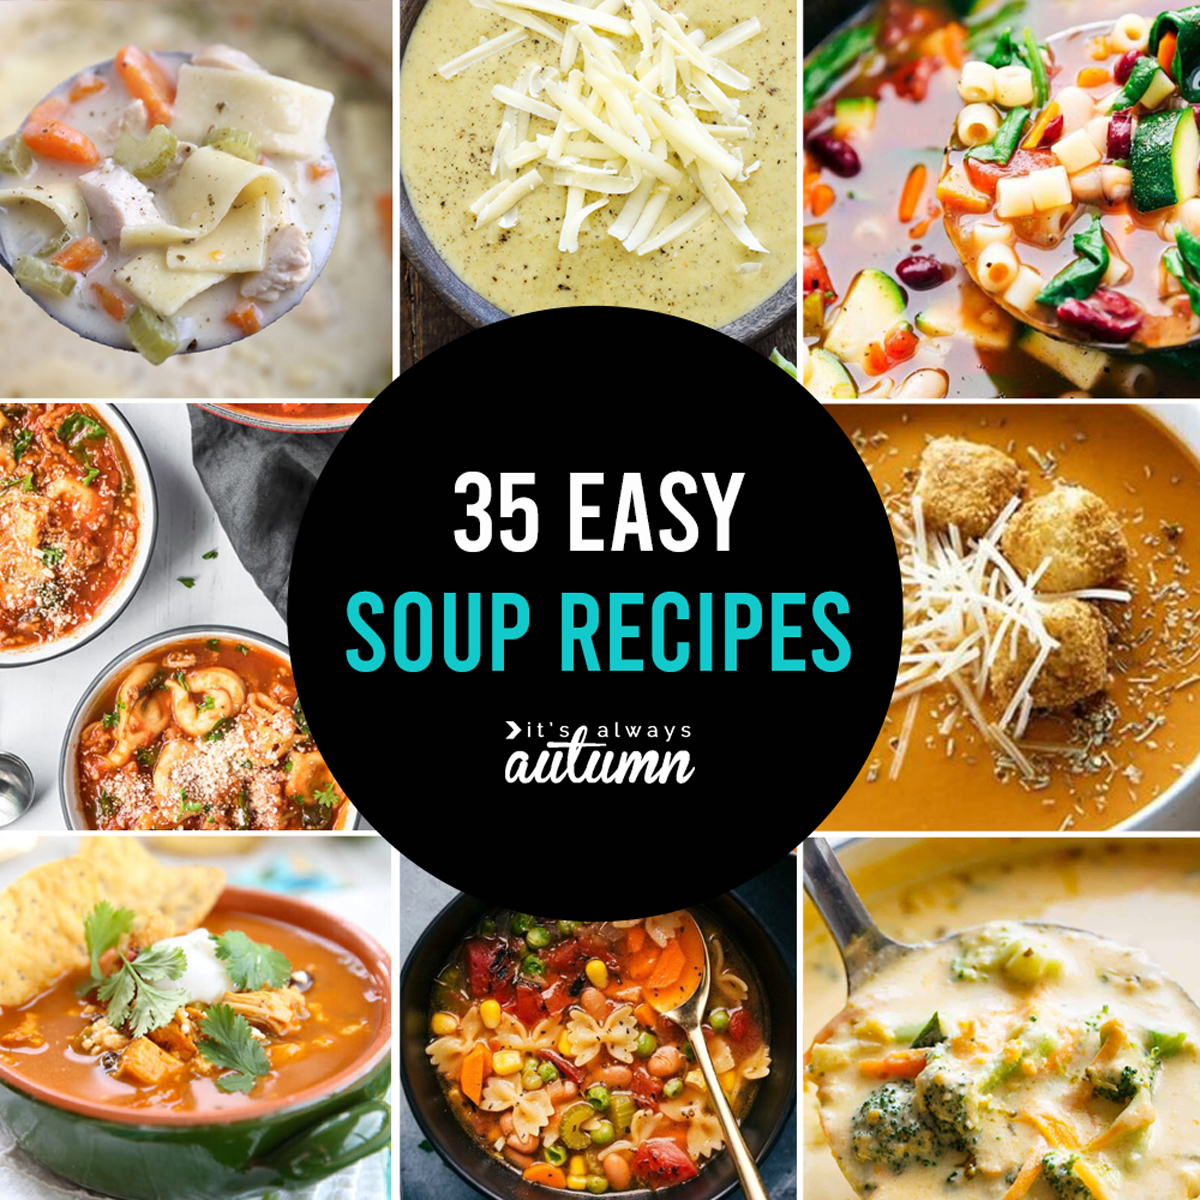 A collage photo with 8 different types of soup; text: 35 easy soup recipes